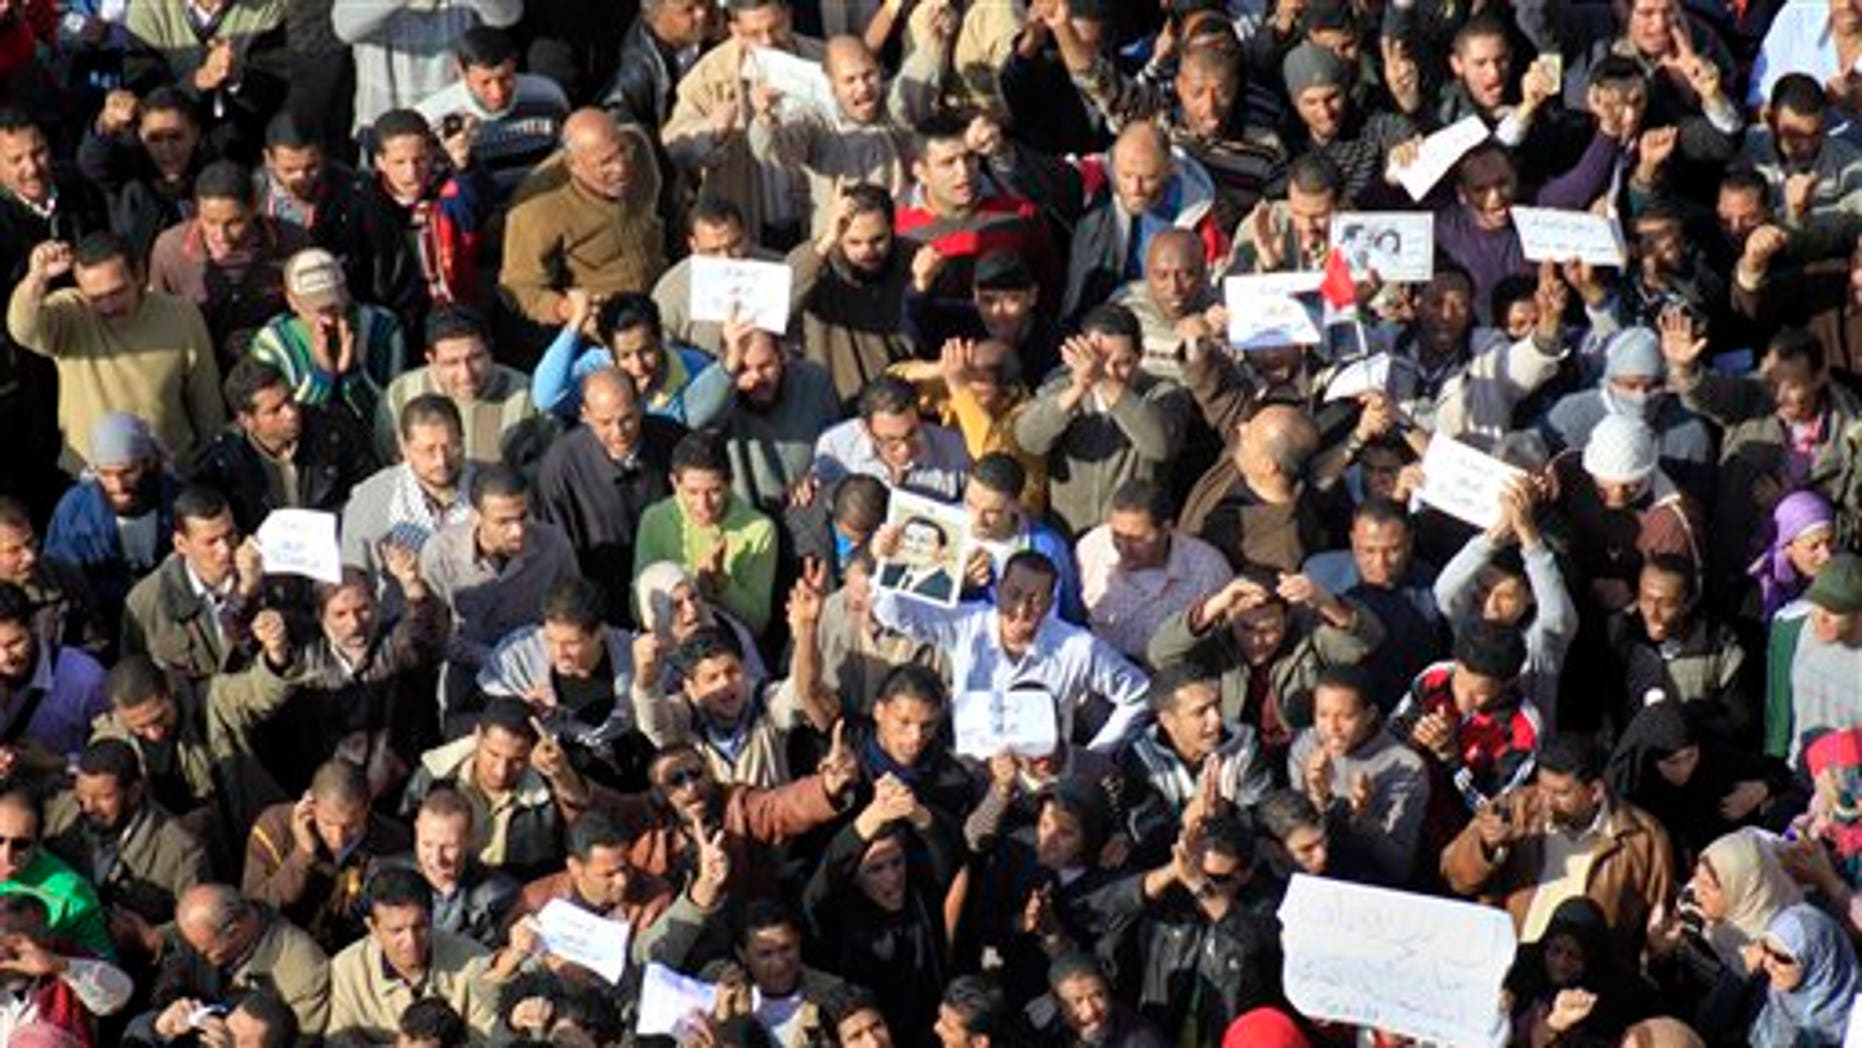 Sunday: Some of the thousands of Egyptian protesters shout anti-Mubarak slogans during a protest in Cairo, Egypt. The army sent hundreds more troops and armored vehicles onto the streets of Cairo and other cities but appeared to be taking little action against mass protests.